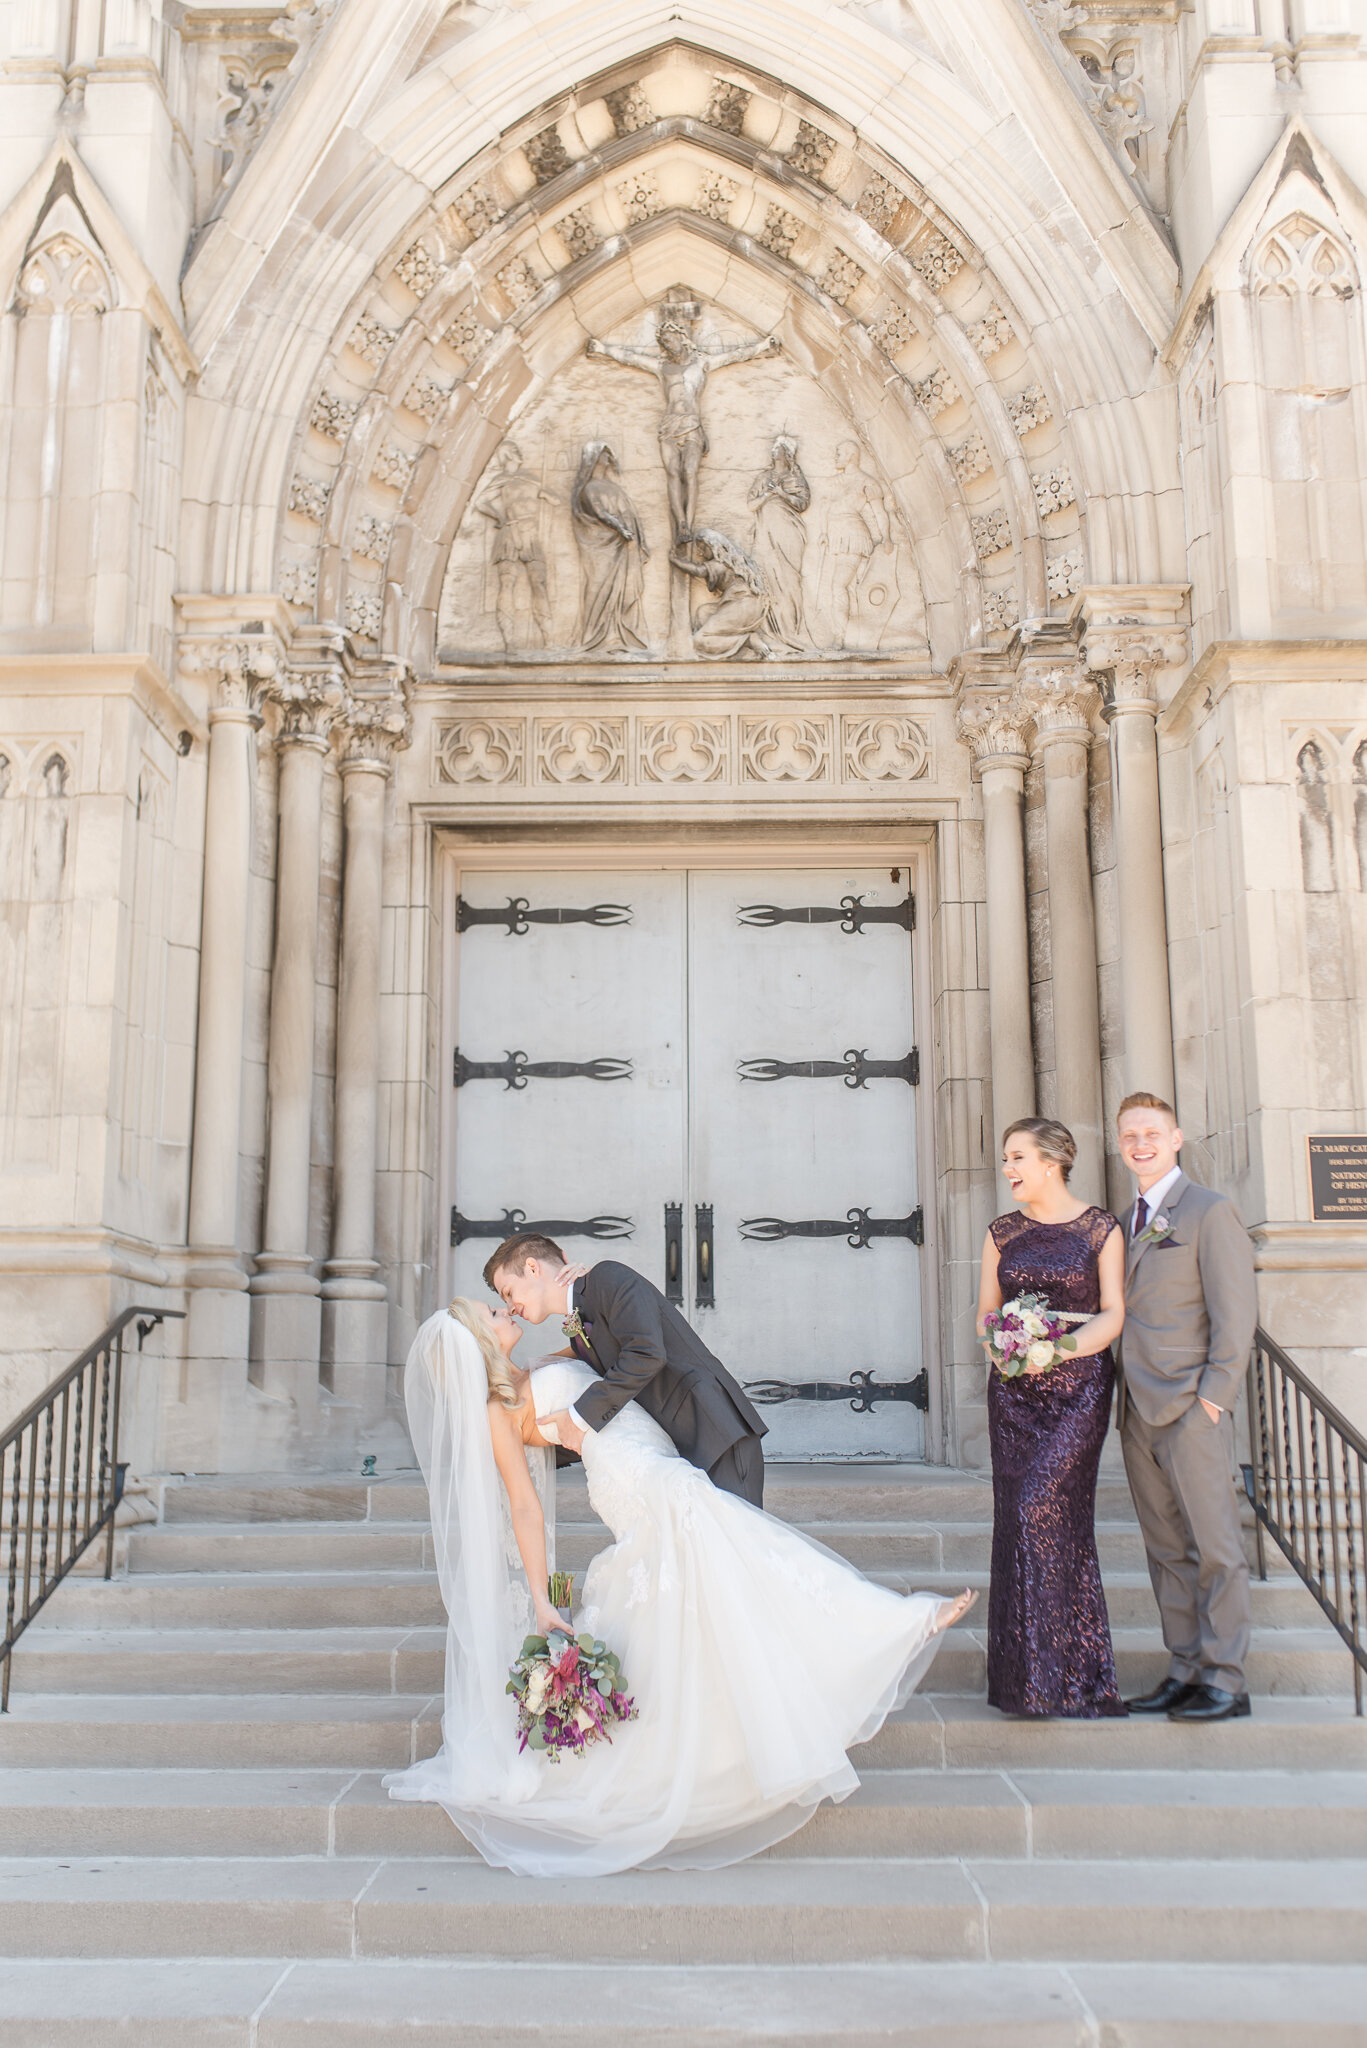 Downtown Indianapolis Wedding at Cyrus Place6367.jpg